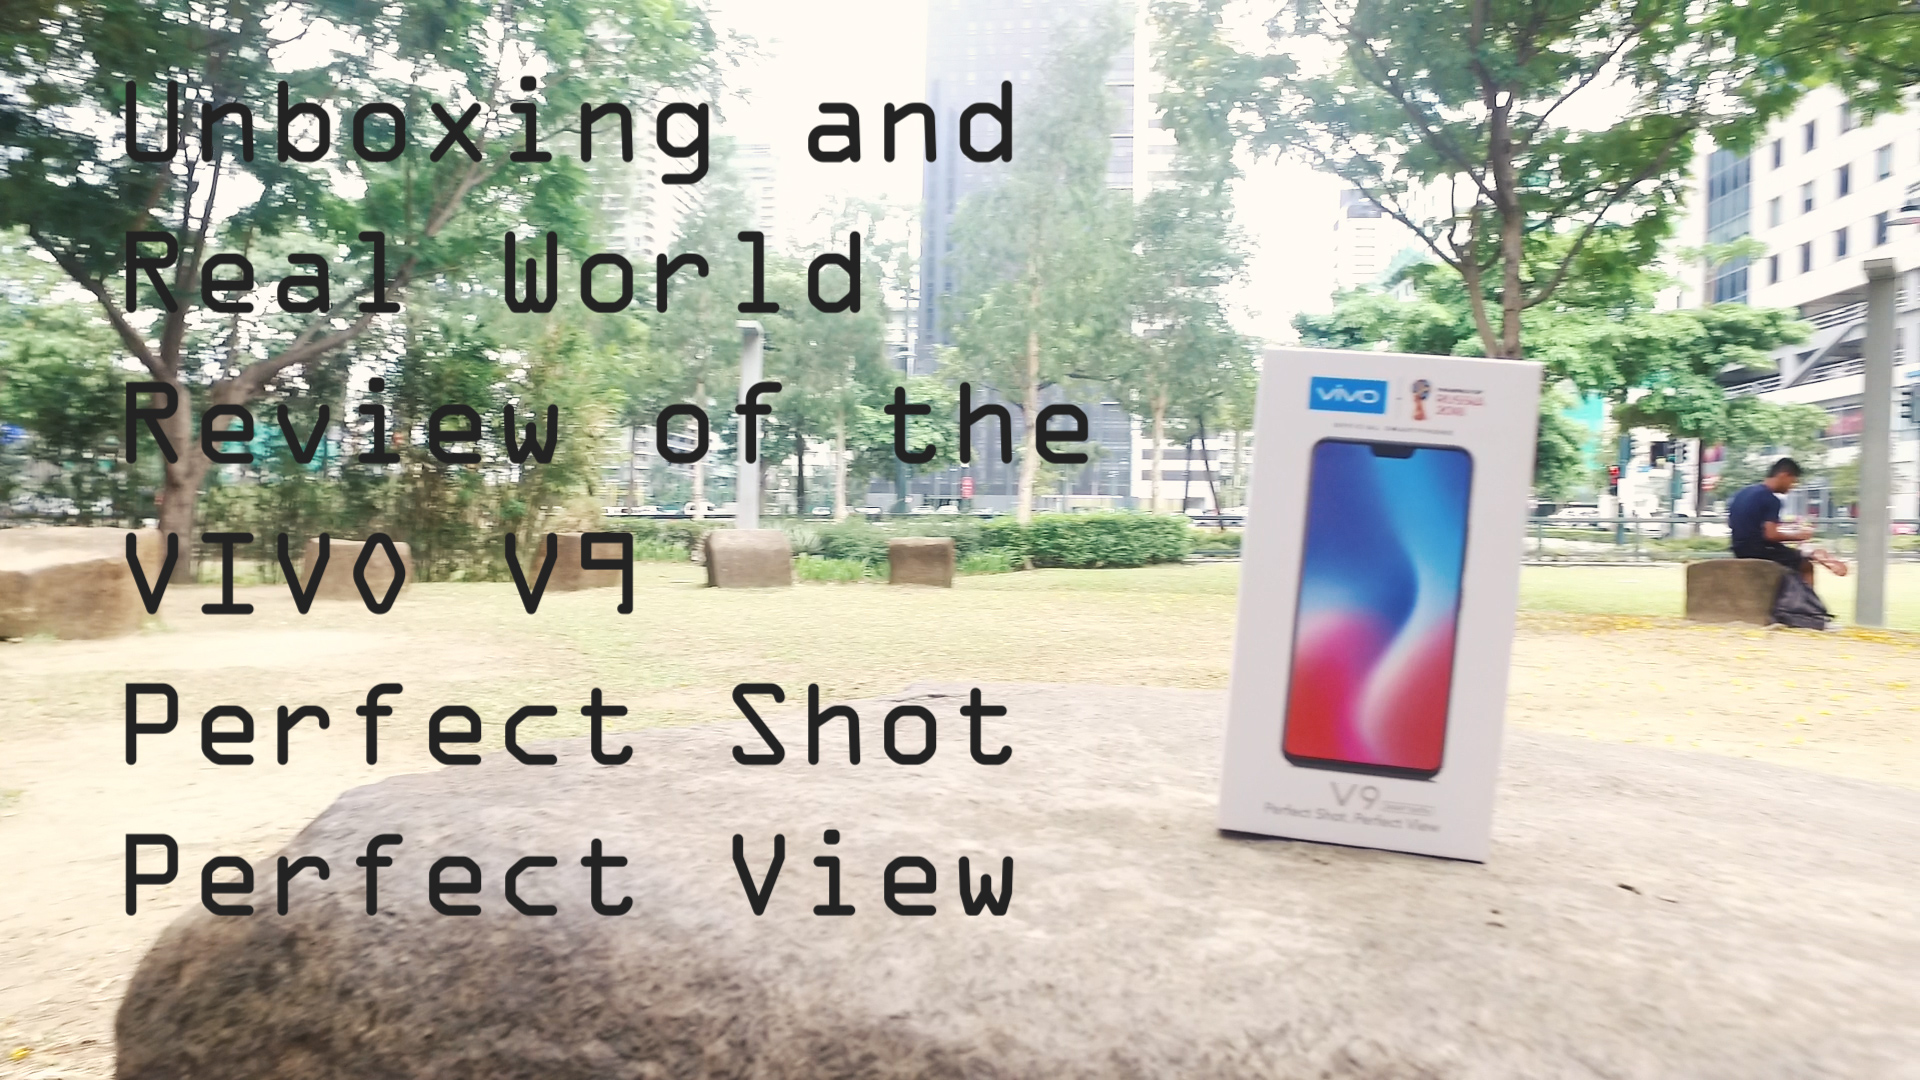 Unboxing and Real Worl Review of the Vivo V9